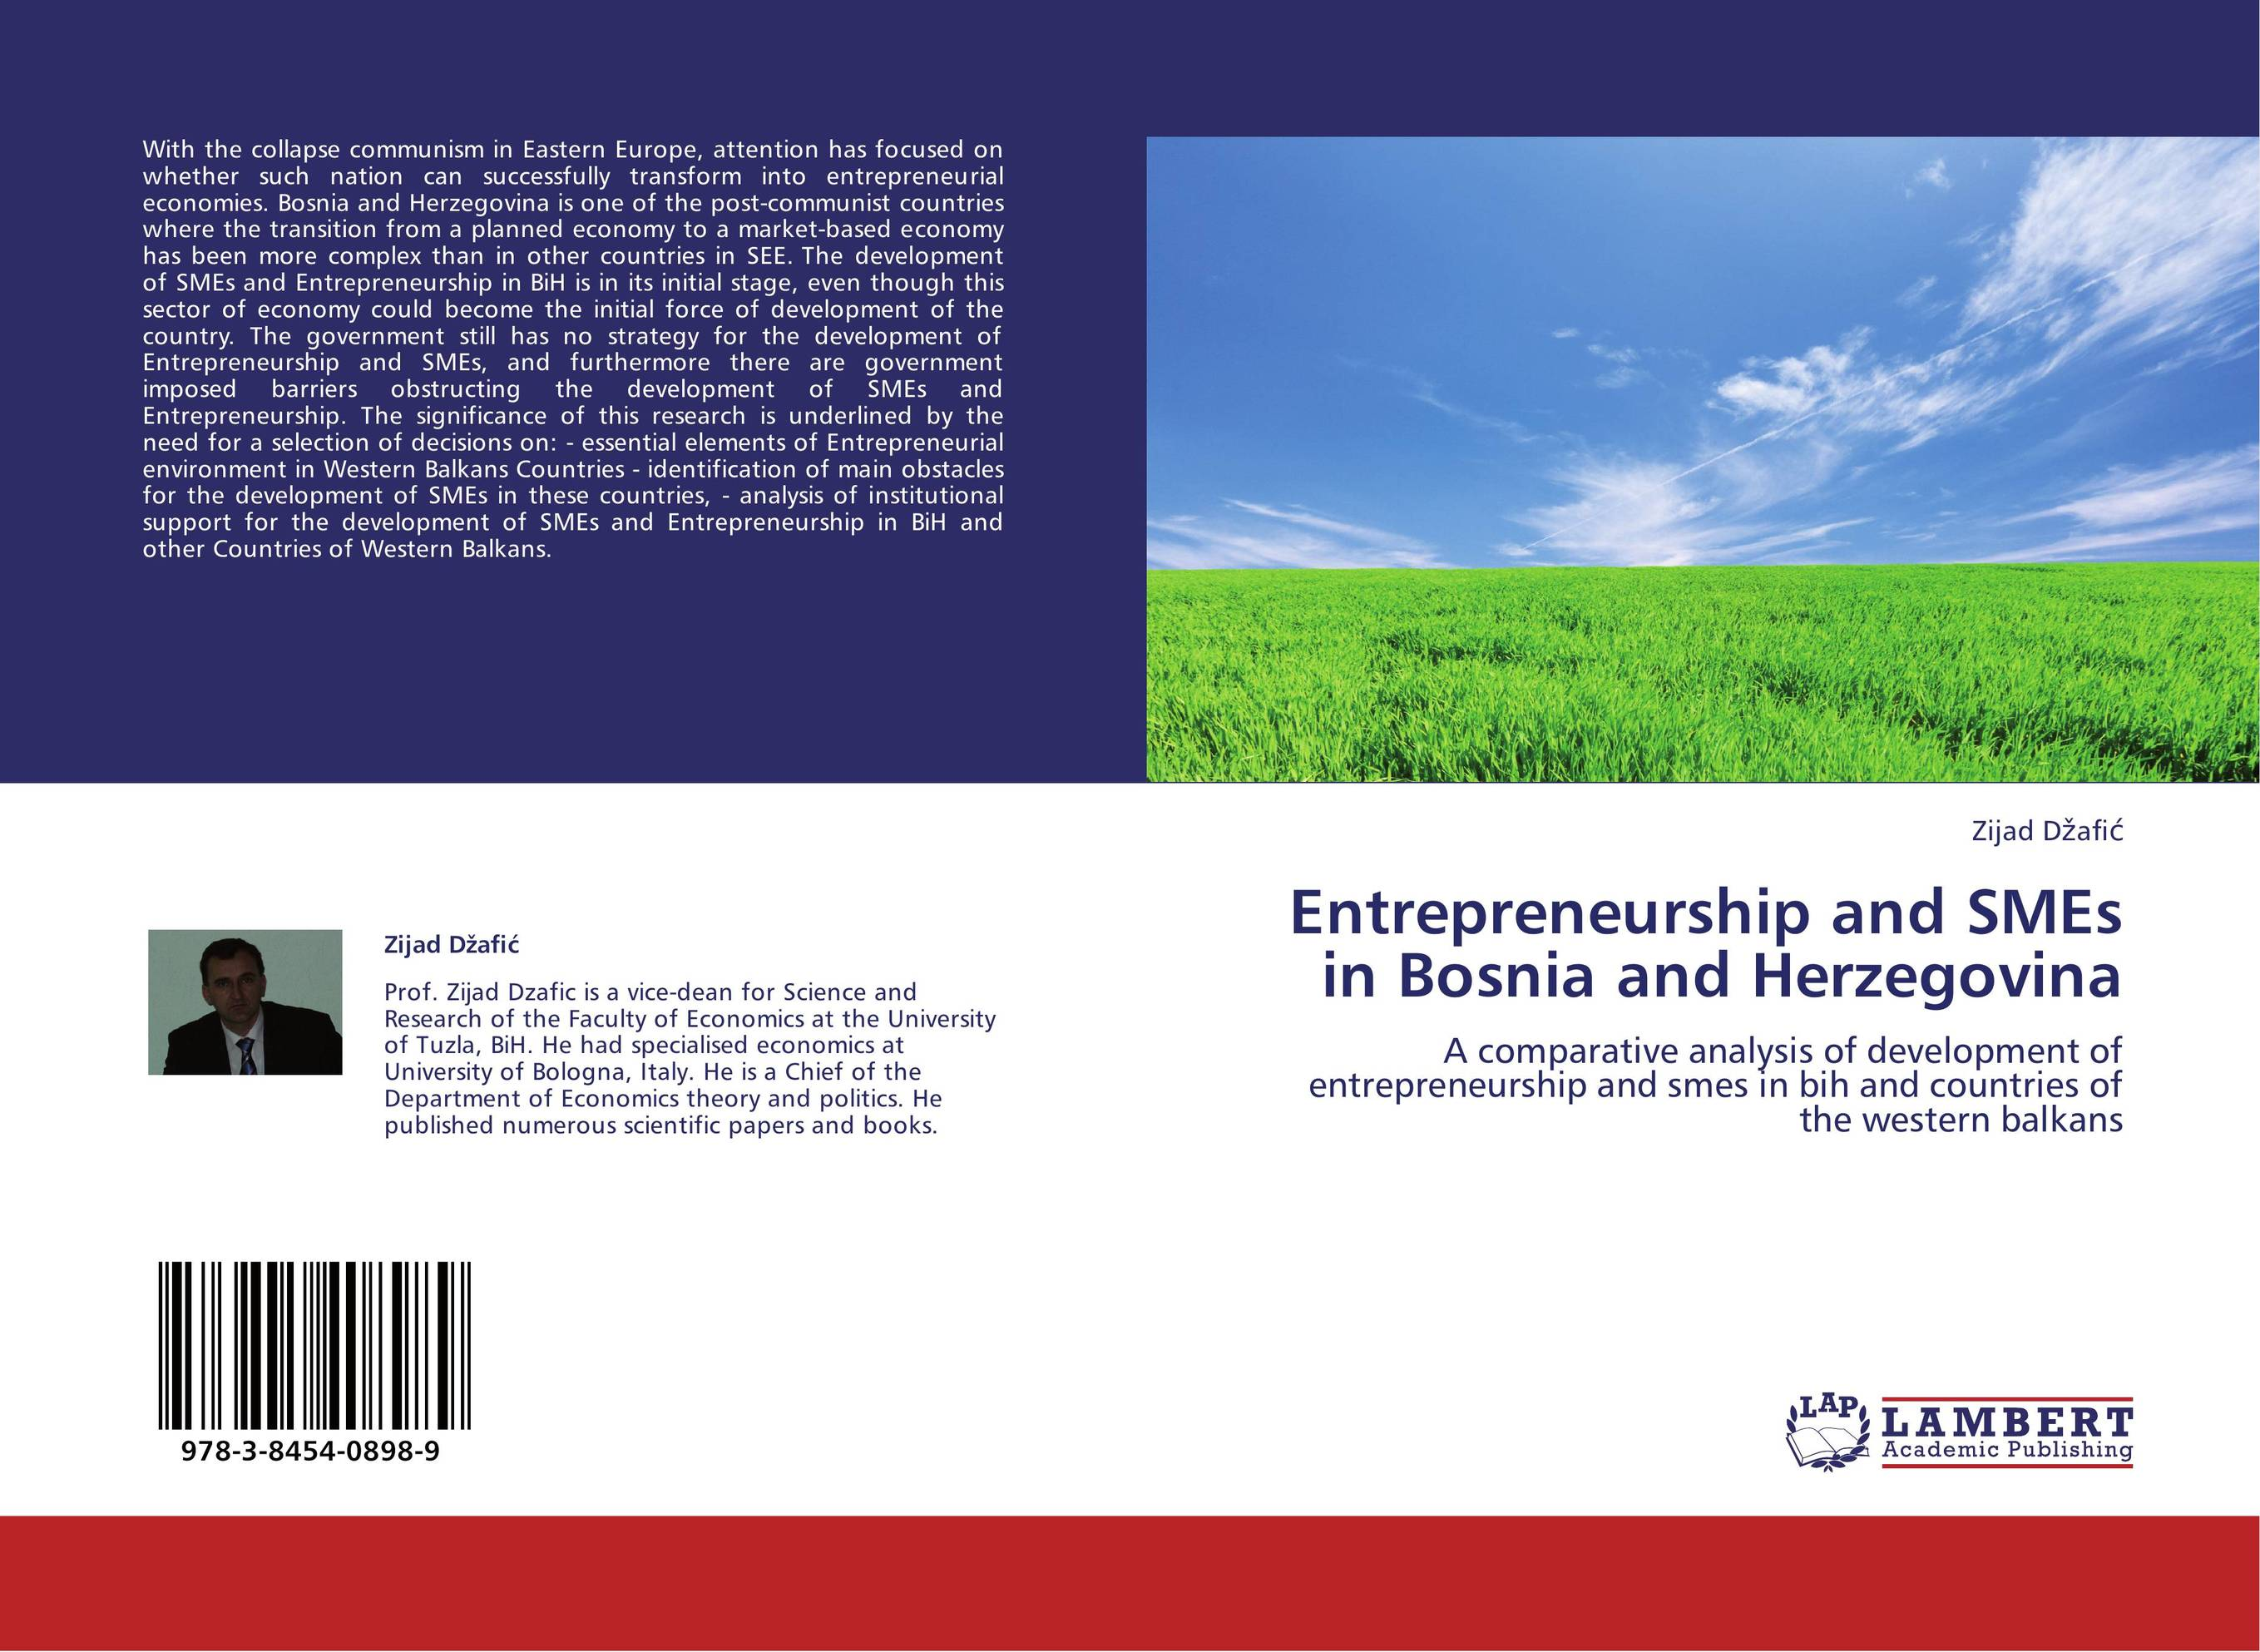 Entrepreneurship and SMEs in Bosnia and Herzegovina n giusti diffuse entrepreneurship and the very heart of made in italy for fashion and luxury goods